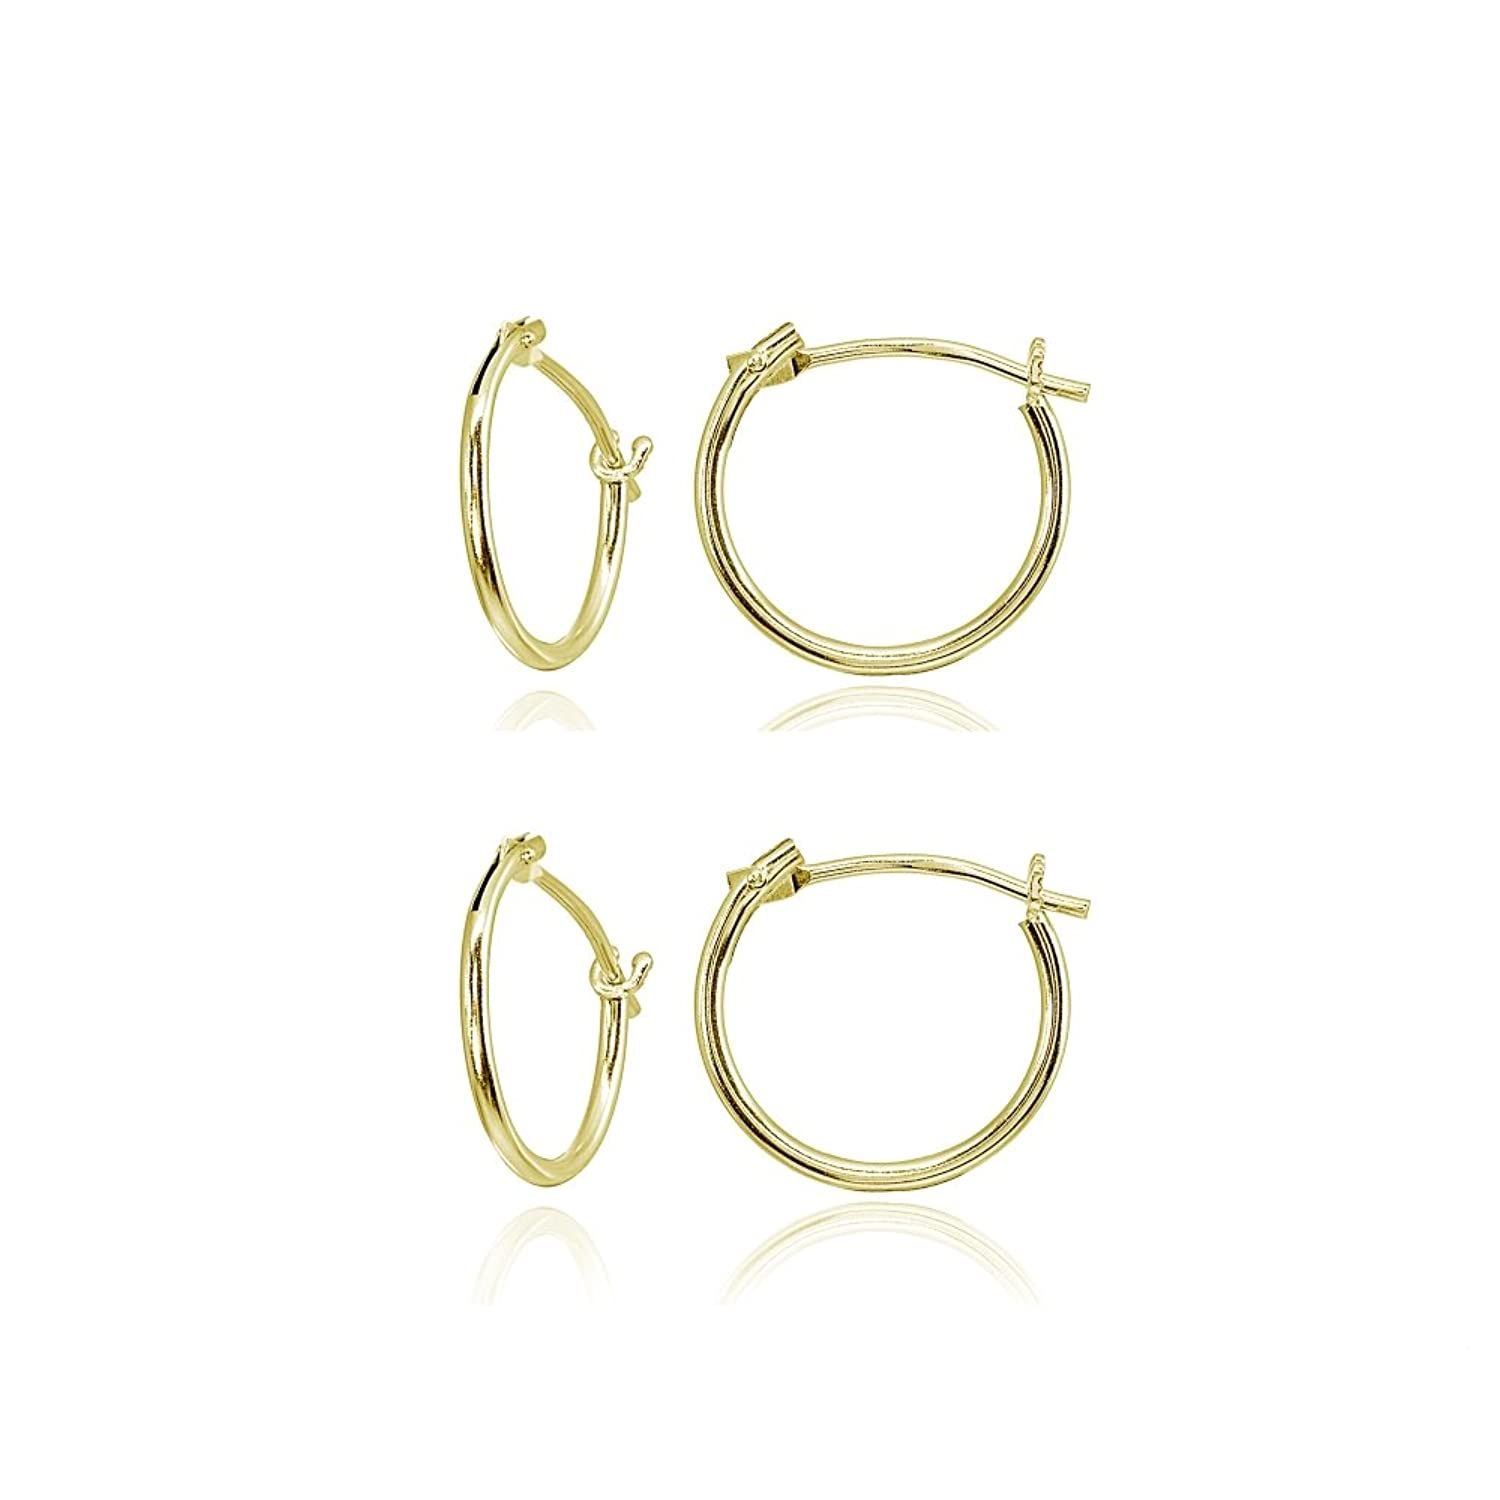 2 Pairs 14K Gold Tiny Small 12mm High Polished Round Thin Lightweight Unisex Hoop Earrings